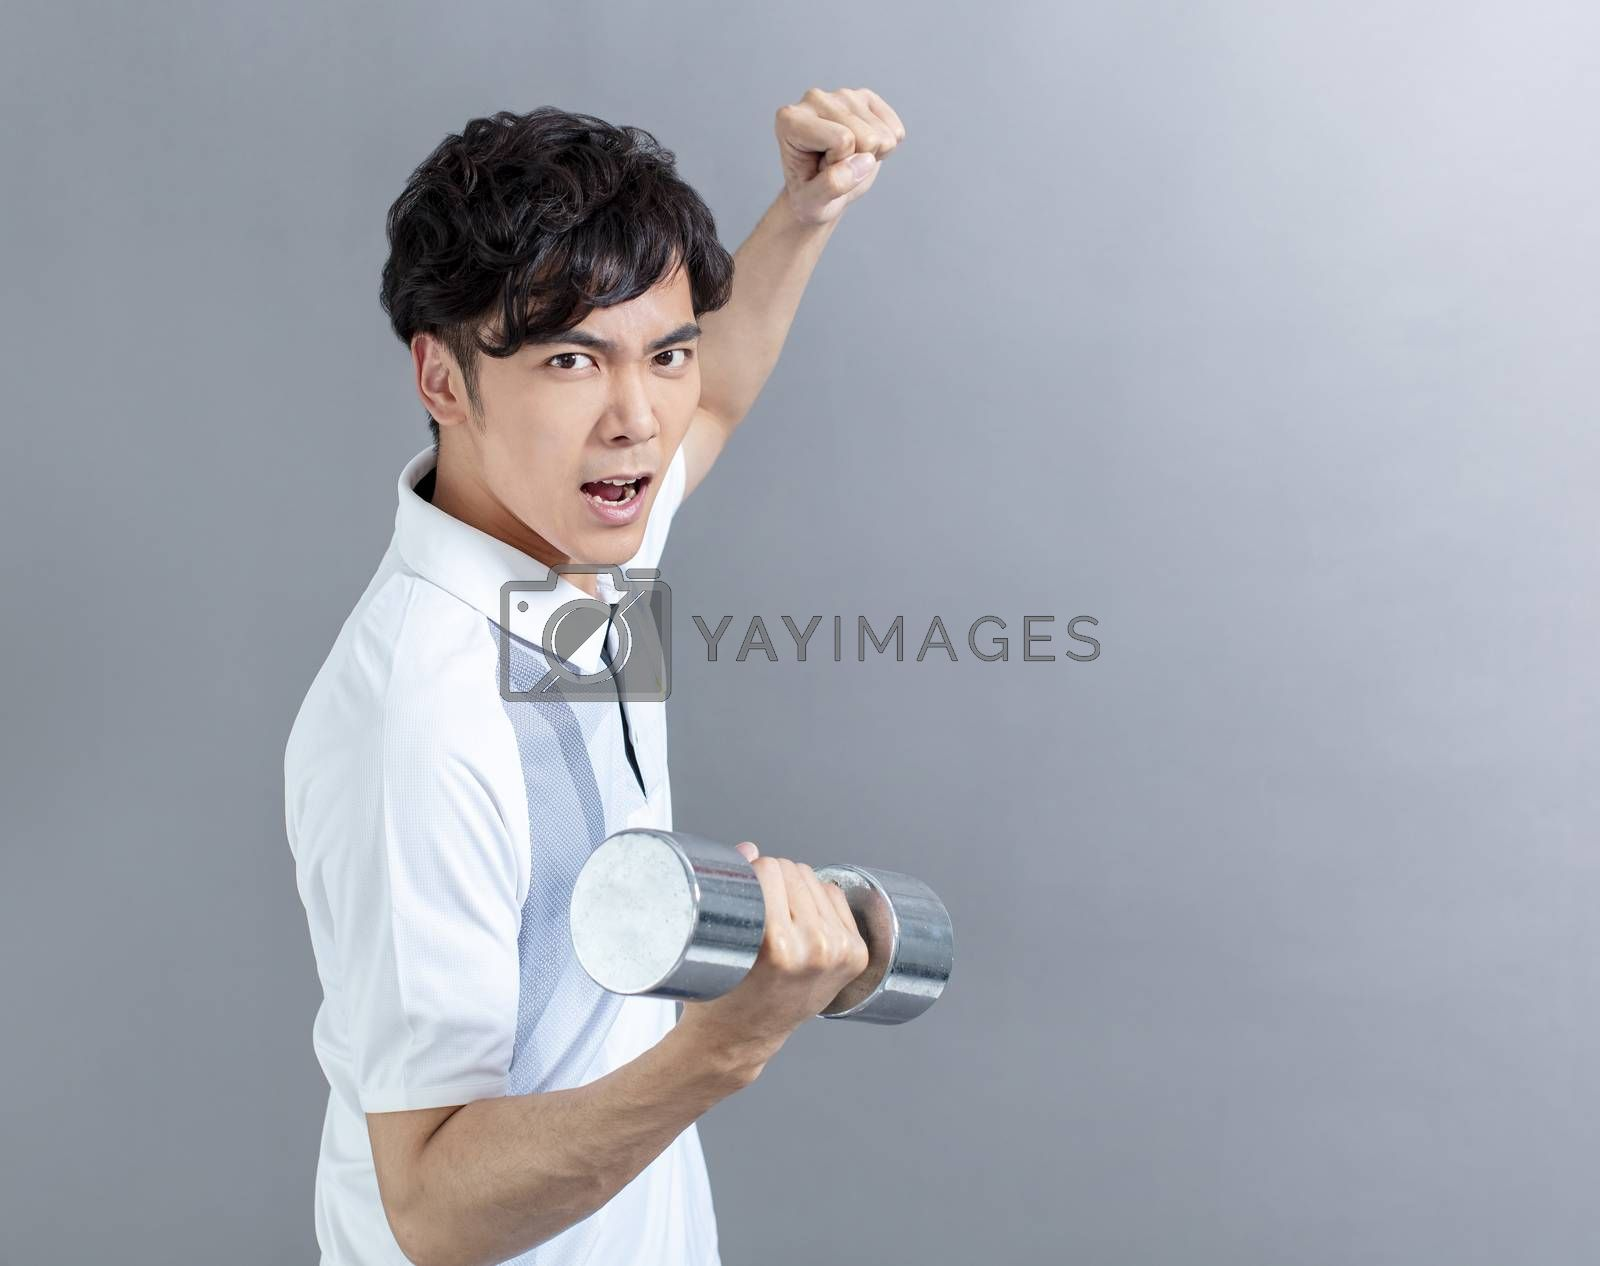 asian young man doing exercise with dumbbell by tomwang